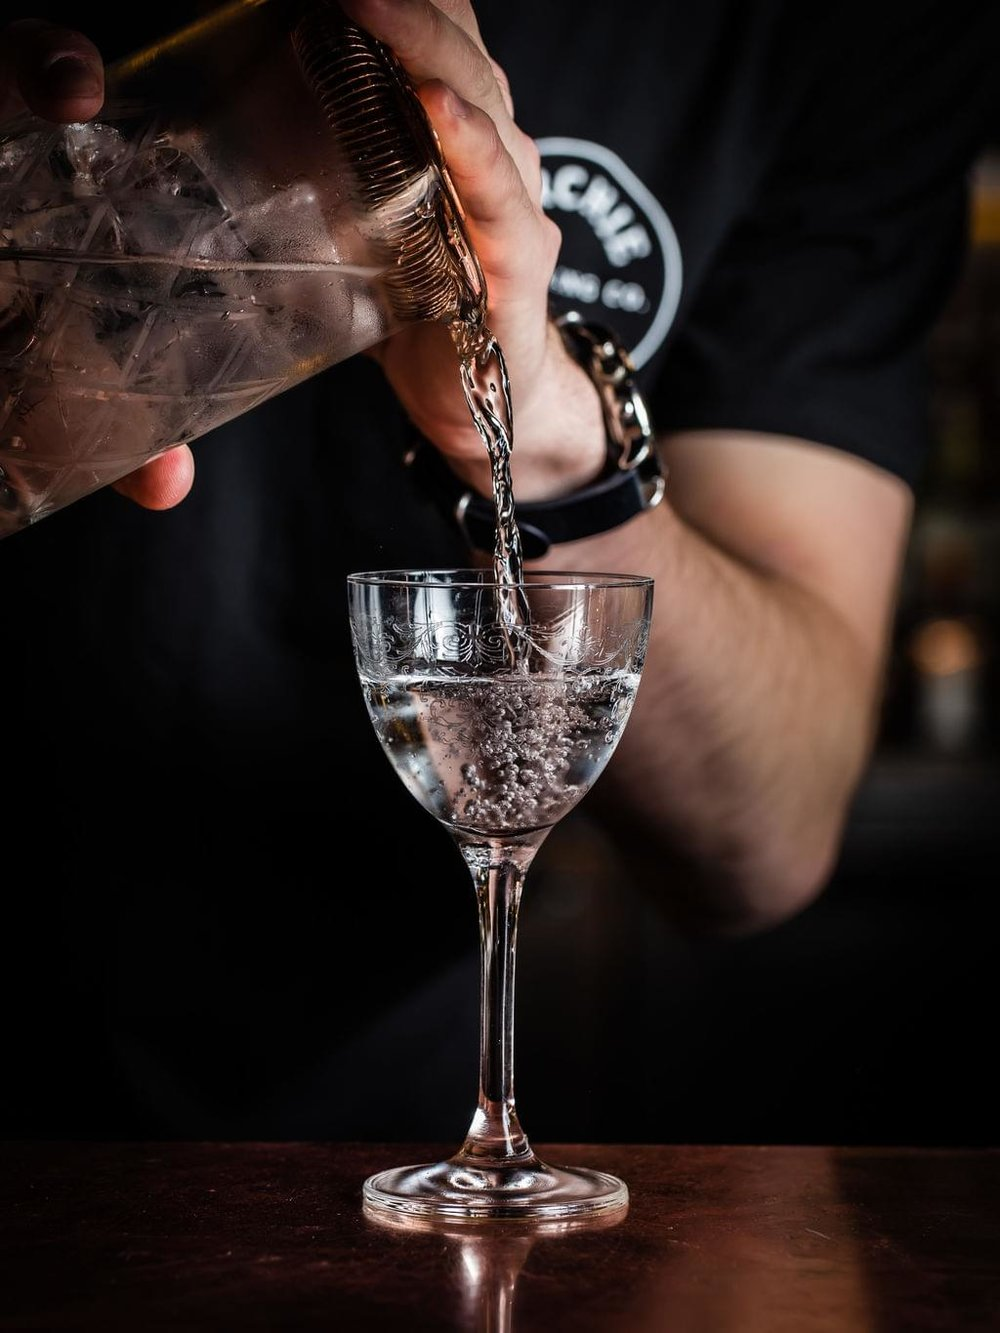 Image:       https://archierose.com.au/journal/summers-best/cocktail-profile-the-martini  (a good read - recommended)